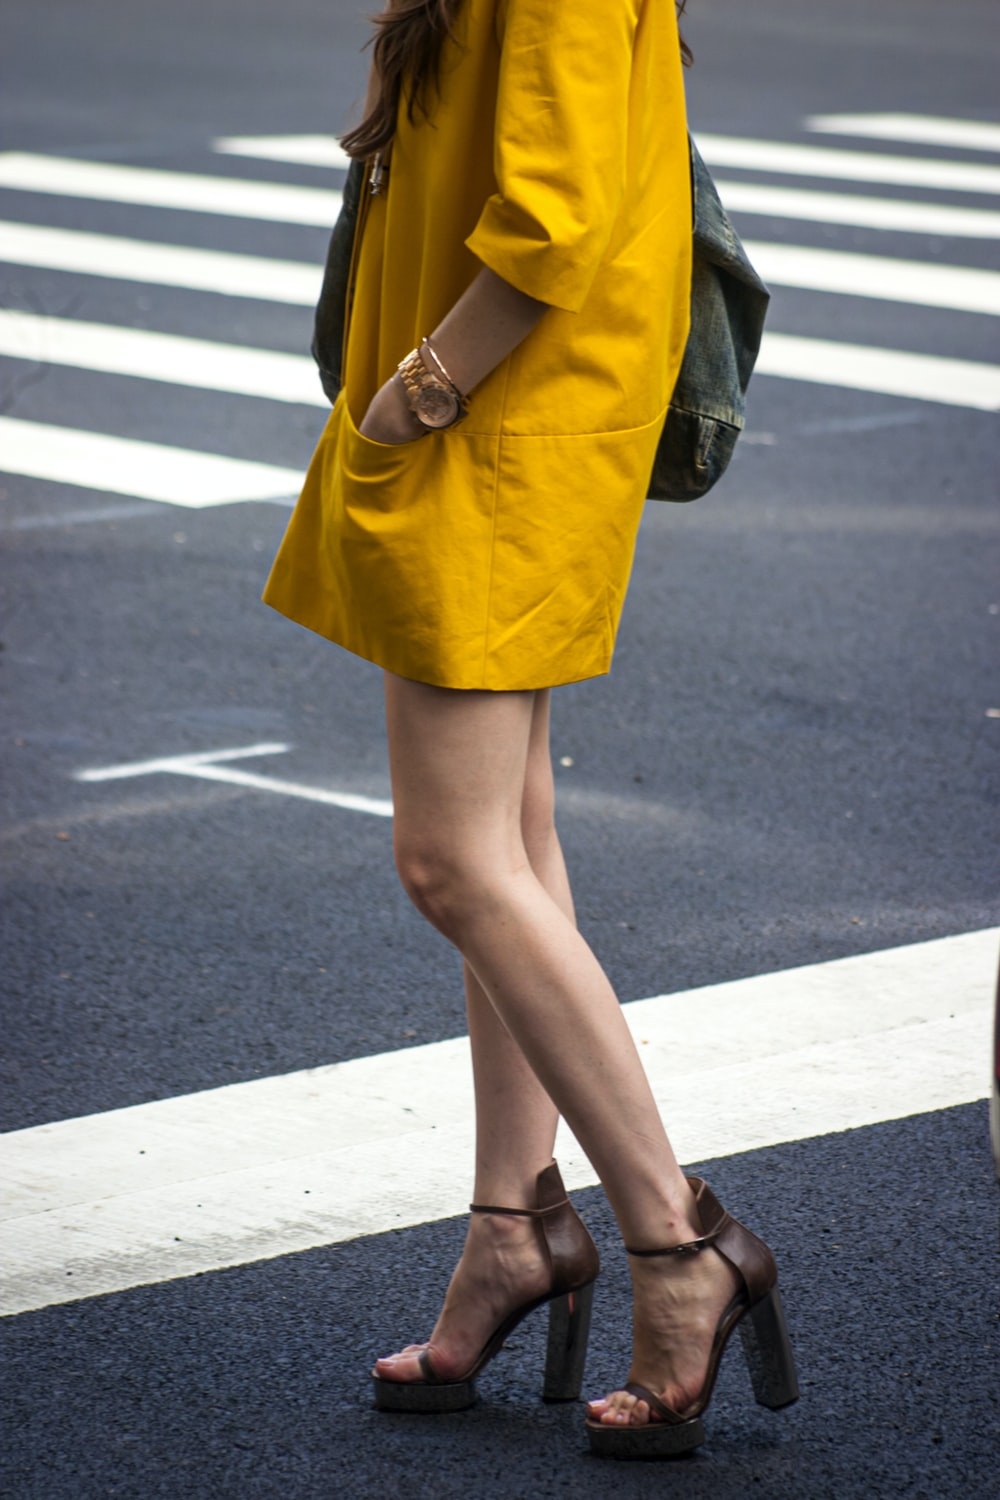 woman in yellow dress and black leather boots standing on gray asphalt road during daytime